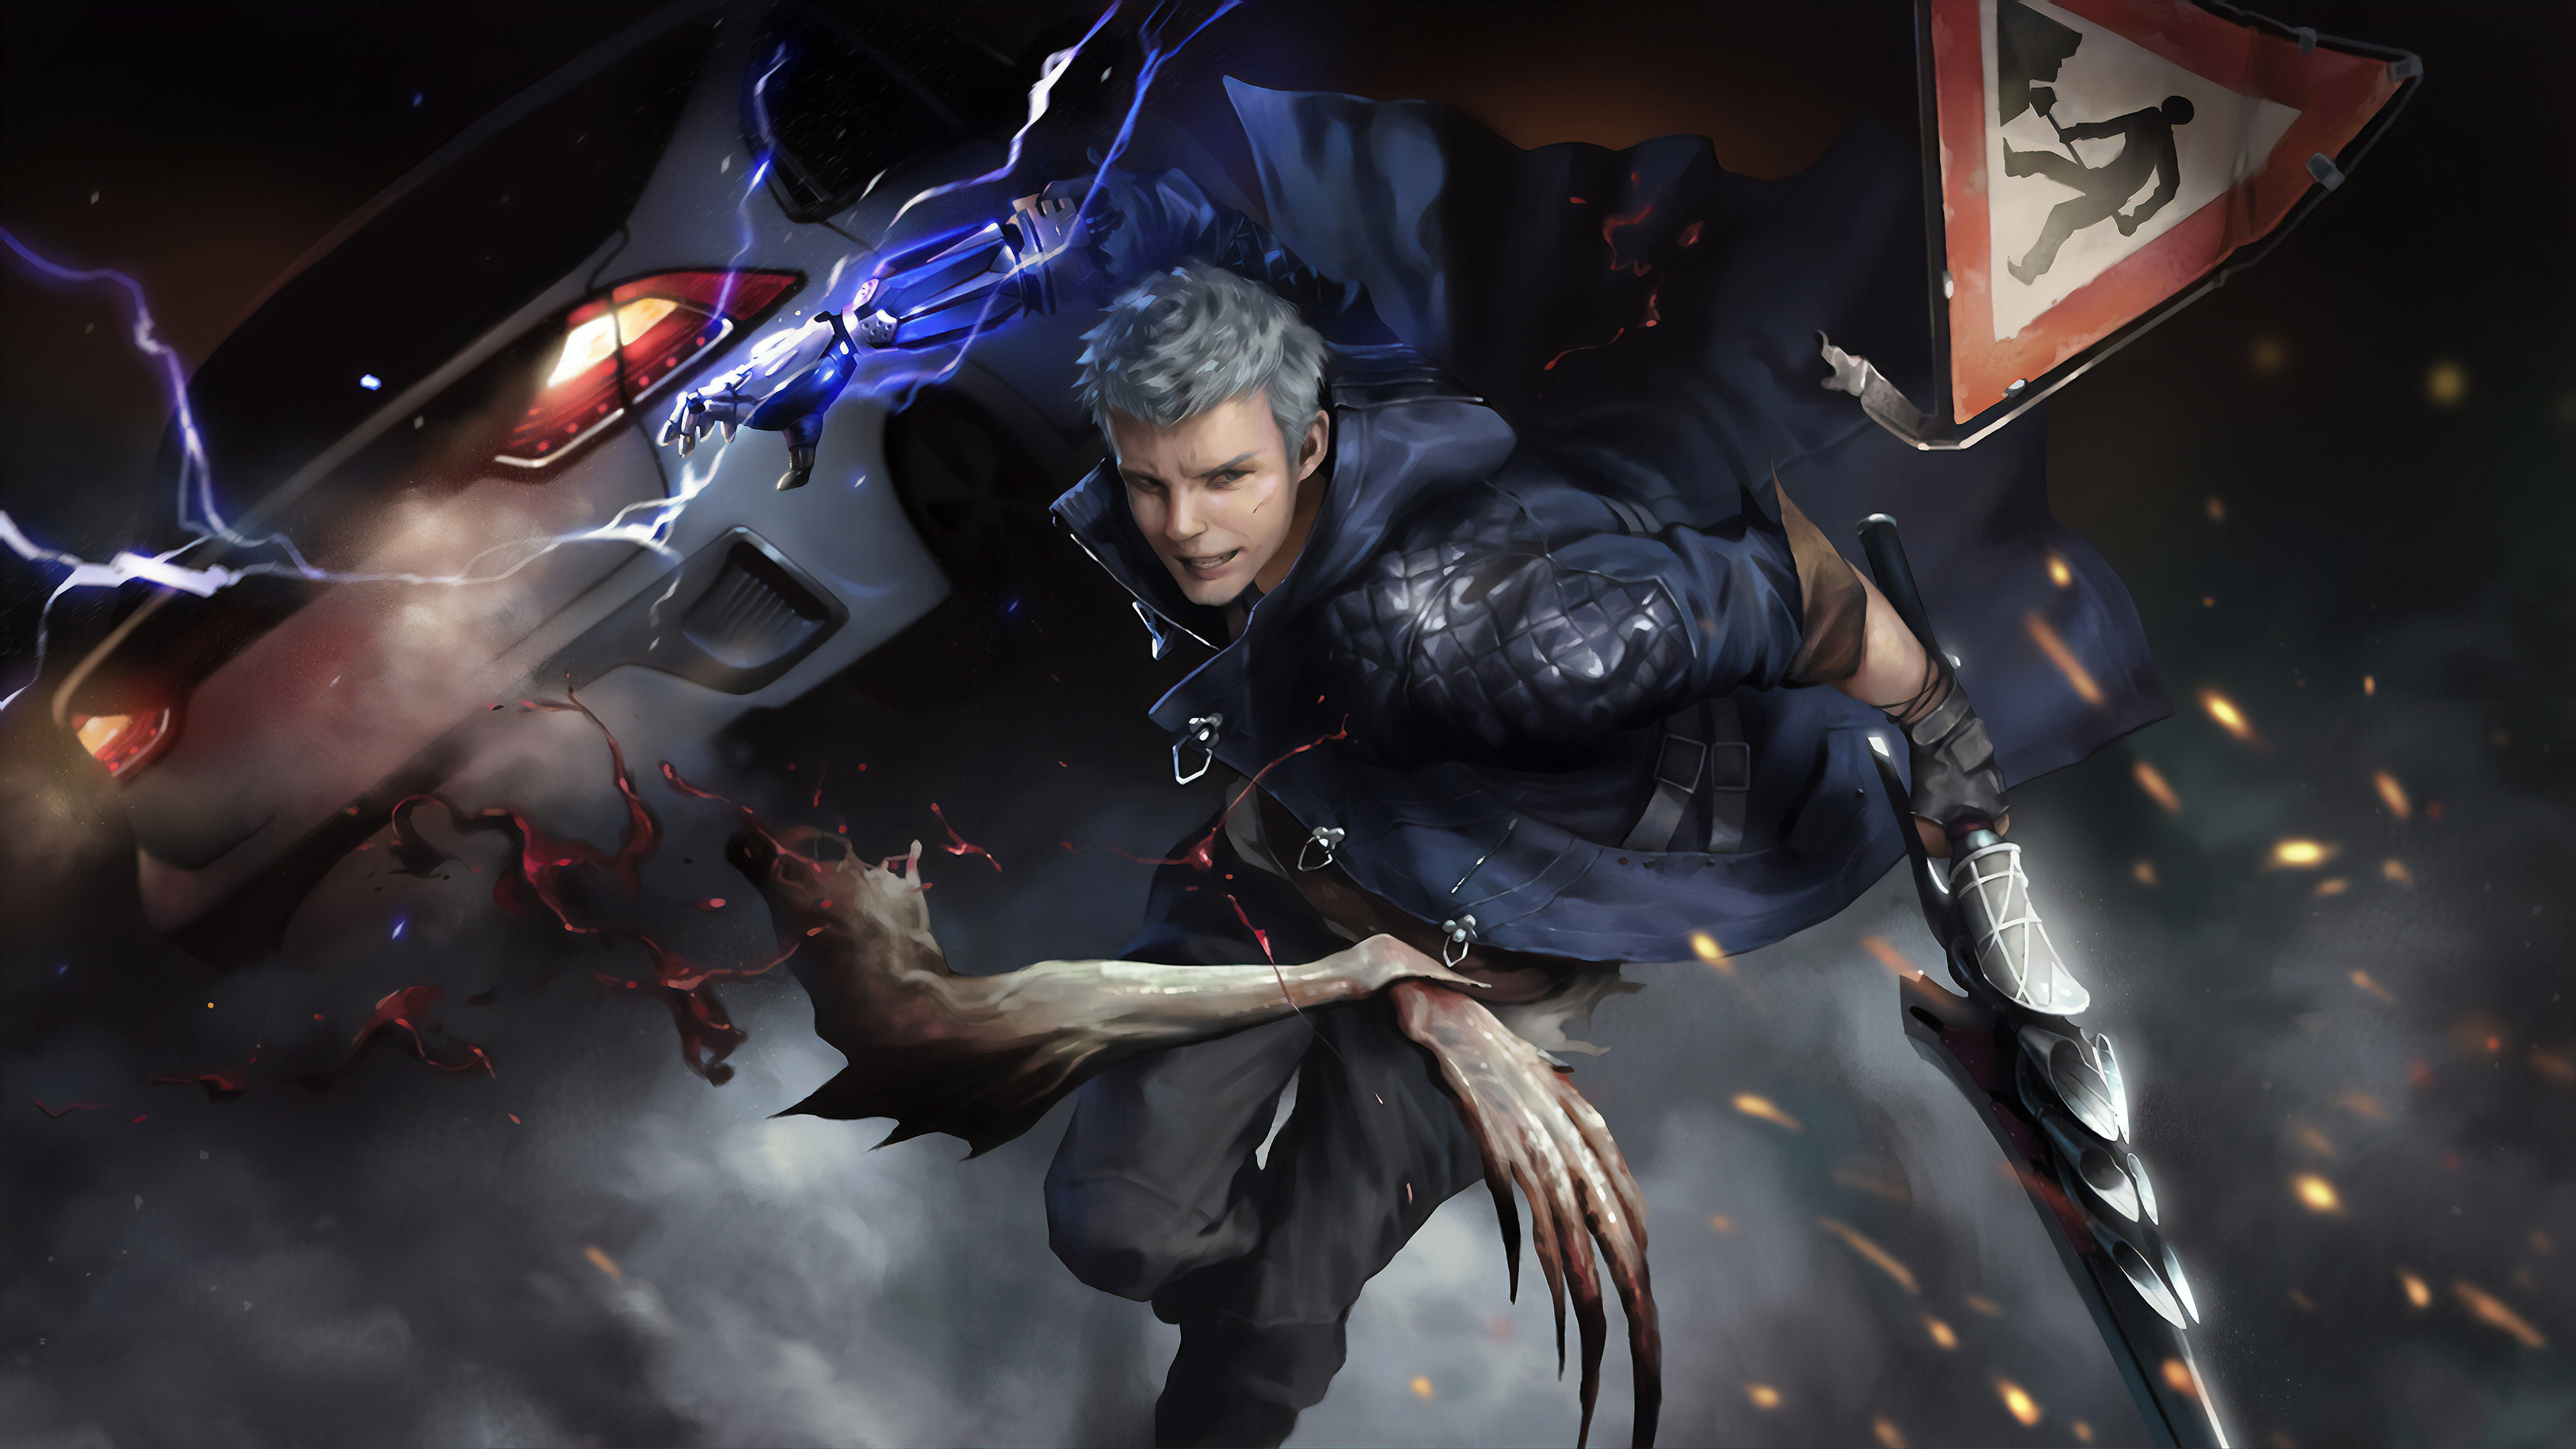 Nero In Devil May Cry 5 4k Art Hd Games 4k Wallpapers